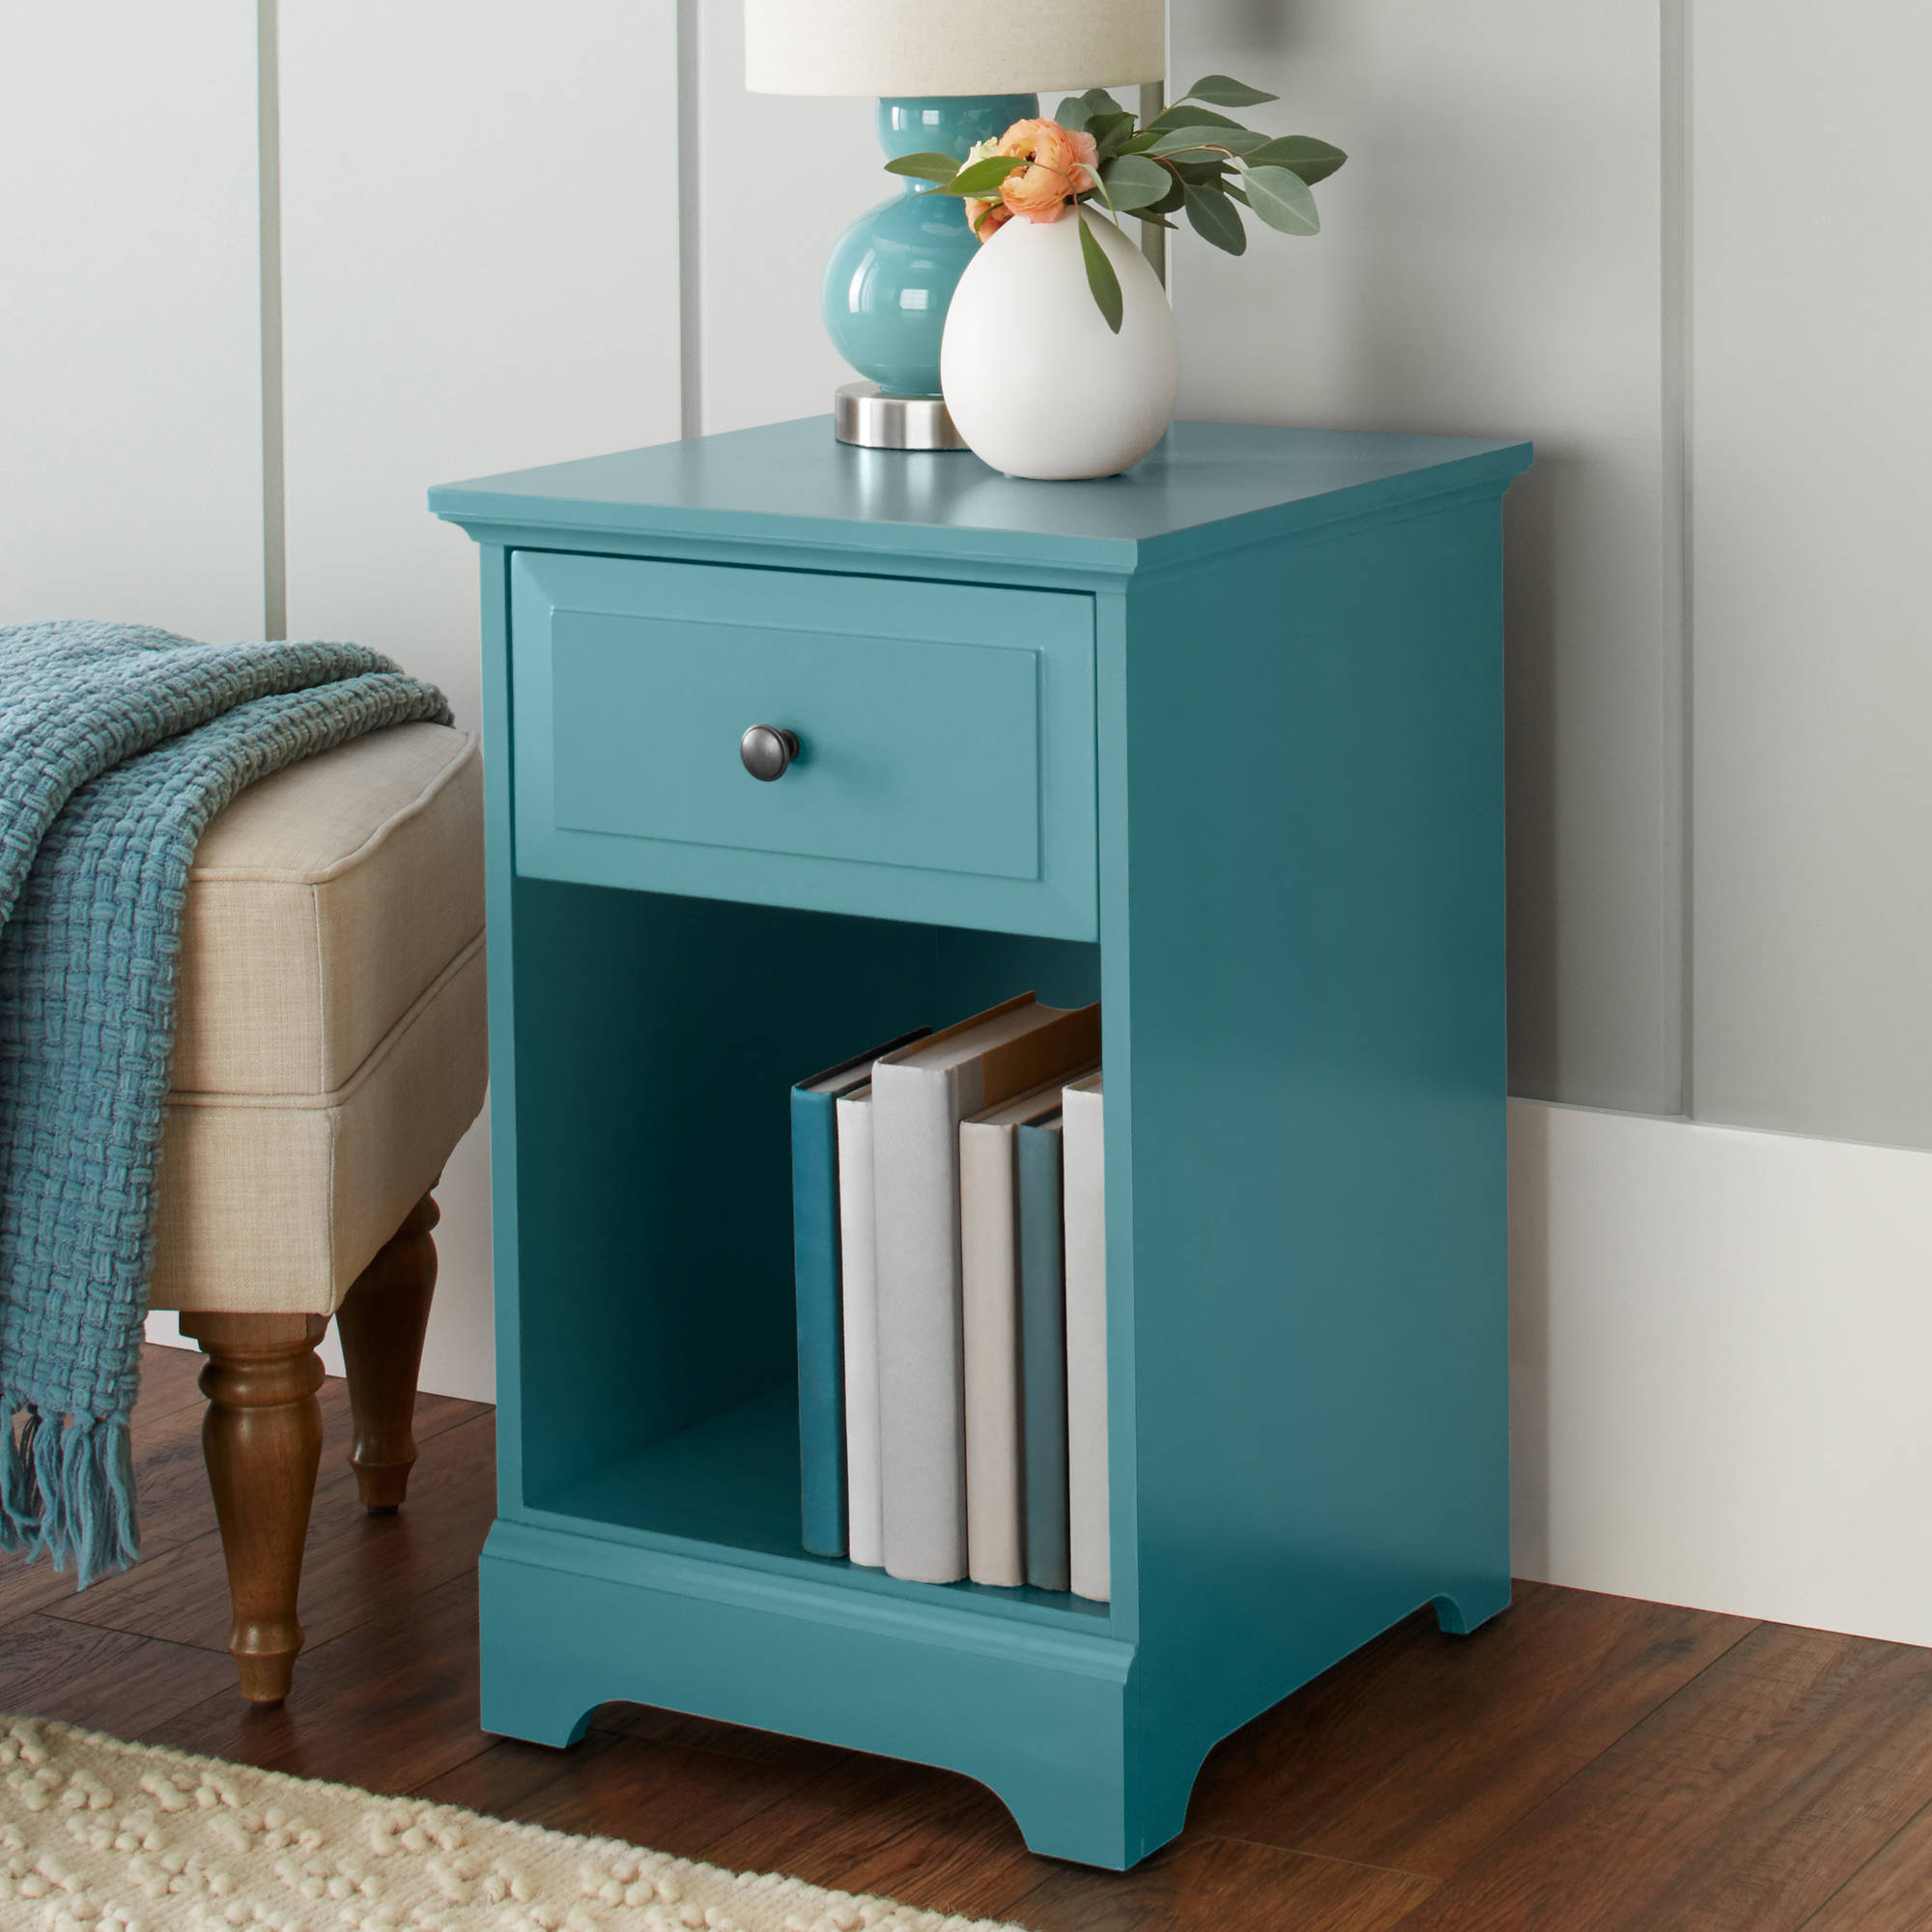 shades only runner target table mats light subnautica second drug spreadsheet lamp decorations tiffany teal tablecloth tables round blue tablets toilet colored navy base plastic